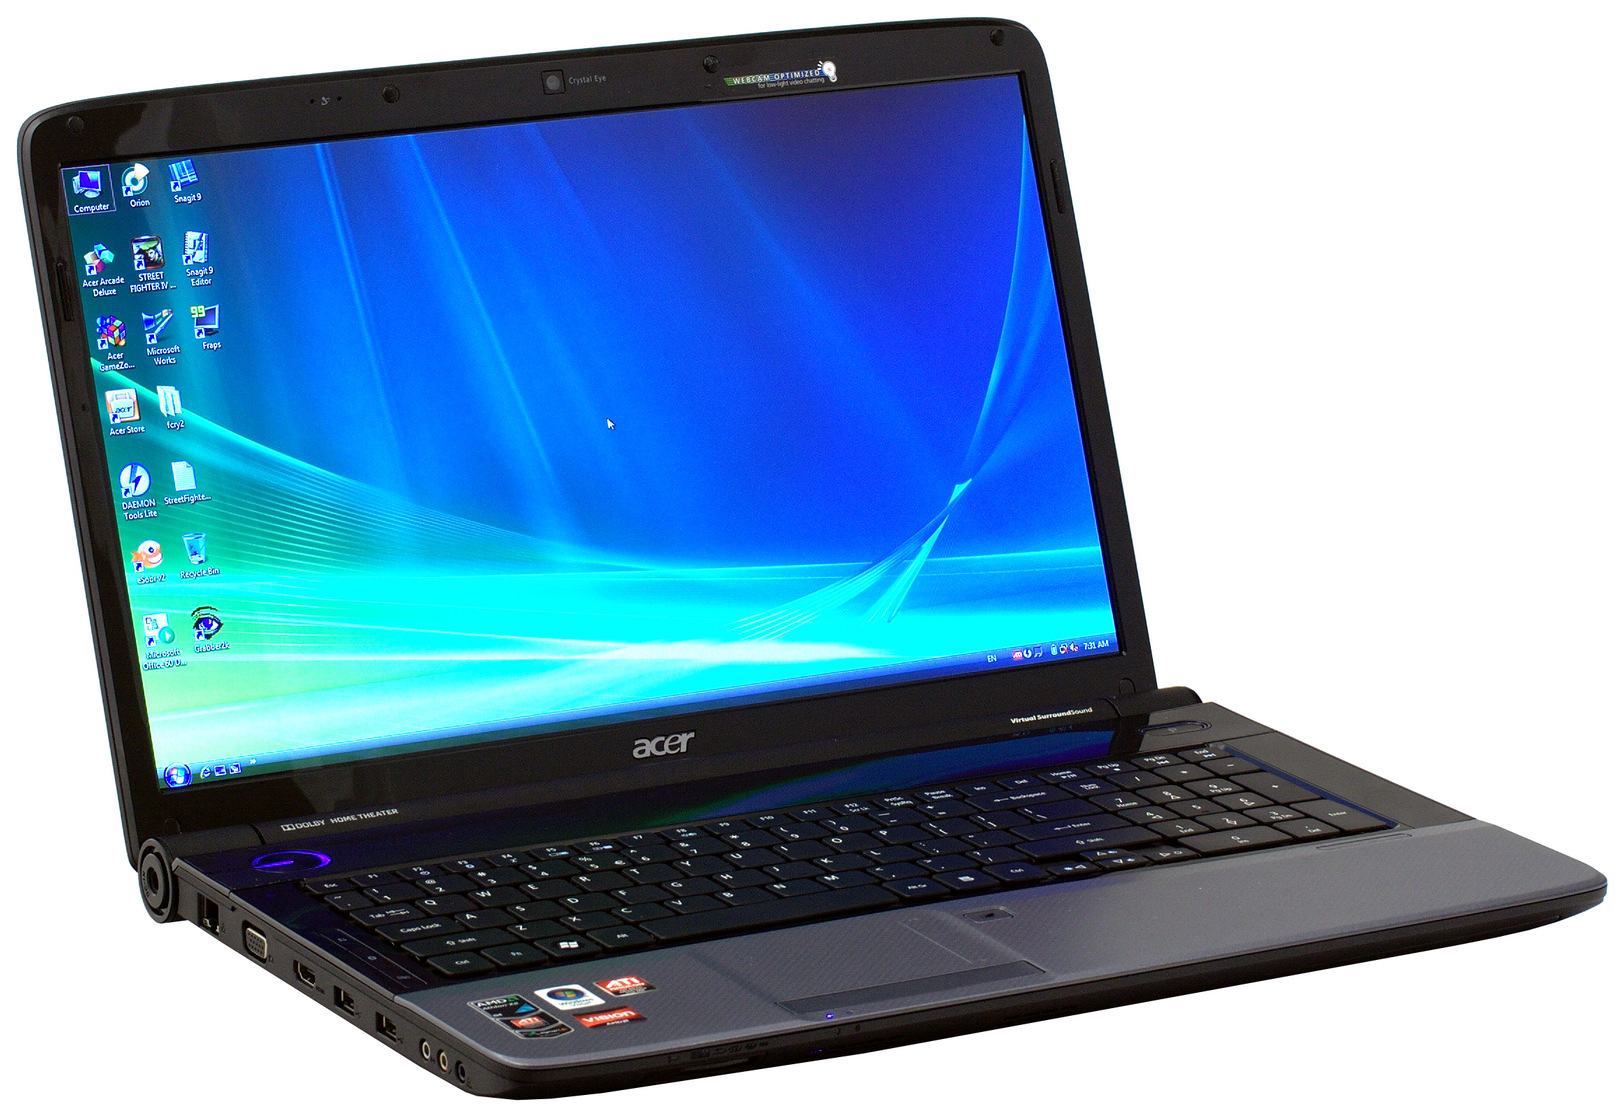 Download Drivers: Acer Aspire 7535G Wireless LAN